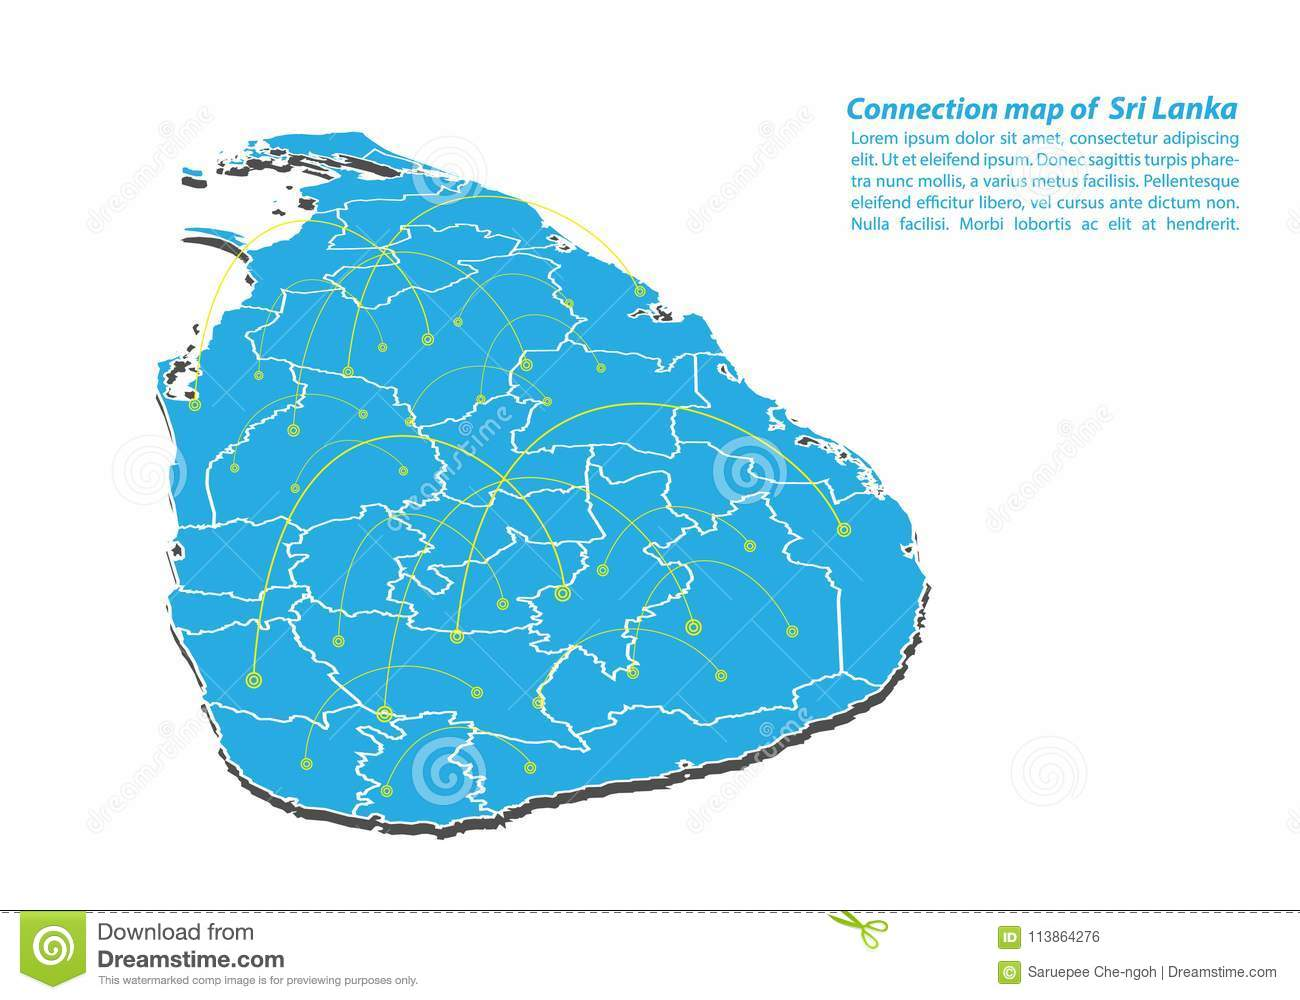 Modern of Sri Lanka Map connections network design, Best Internet Concept of Sri Lanka map business from concepts series